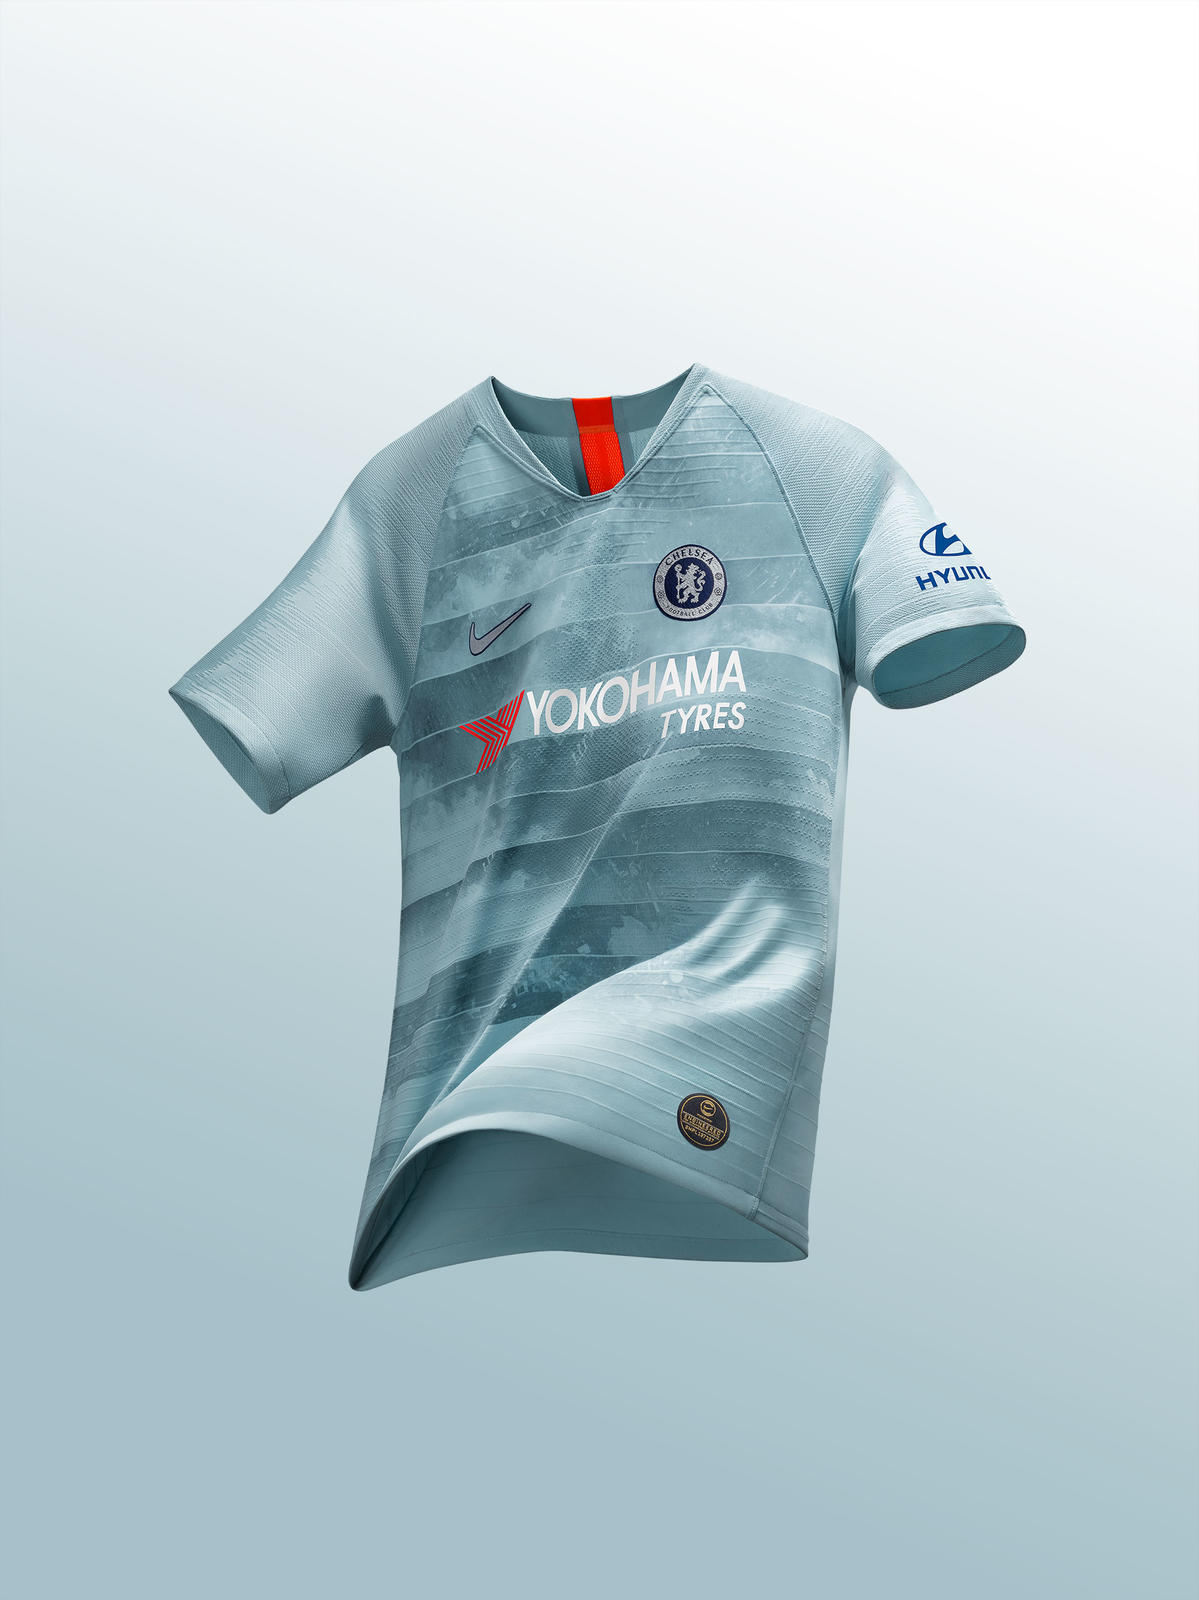 2308498ee Chelsea FC  Kit News - We Ain t Got No History